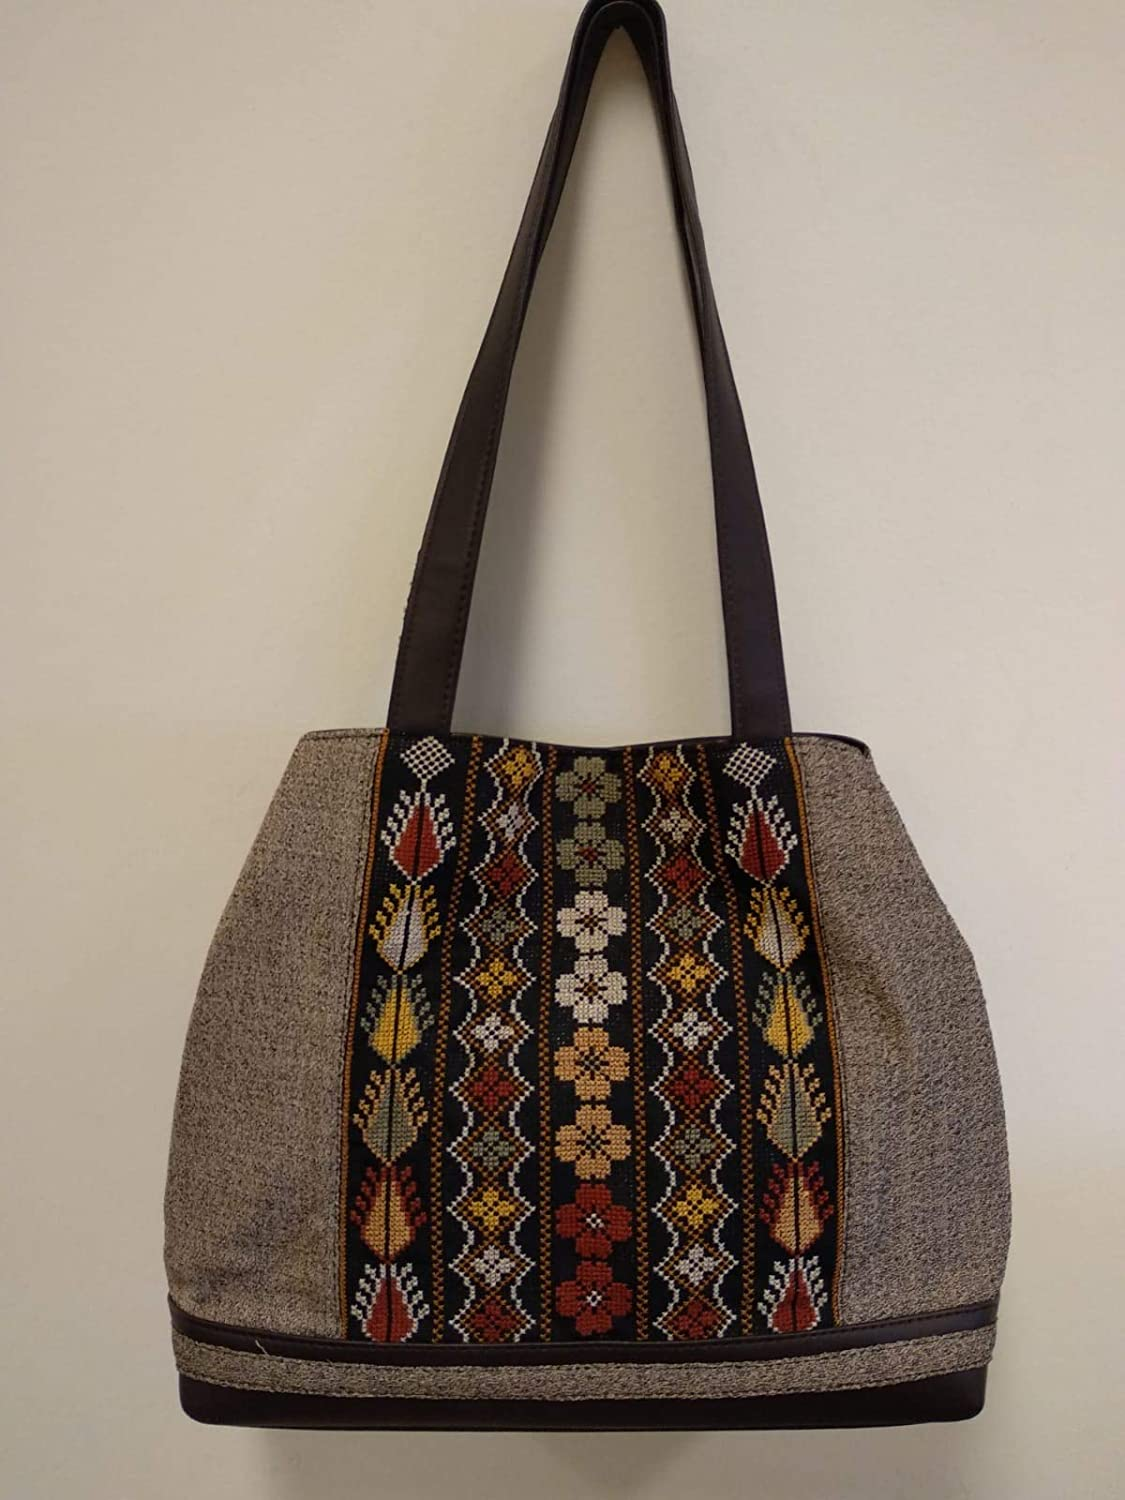 Amazon.com: Hand-made Tote Bag for women made by traditional ...